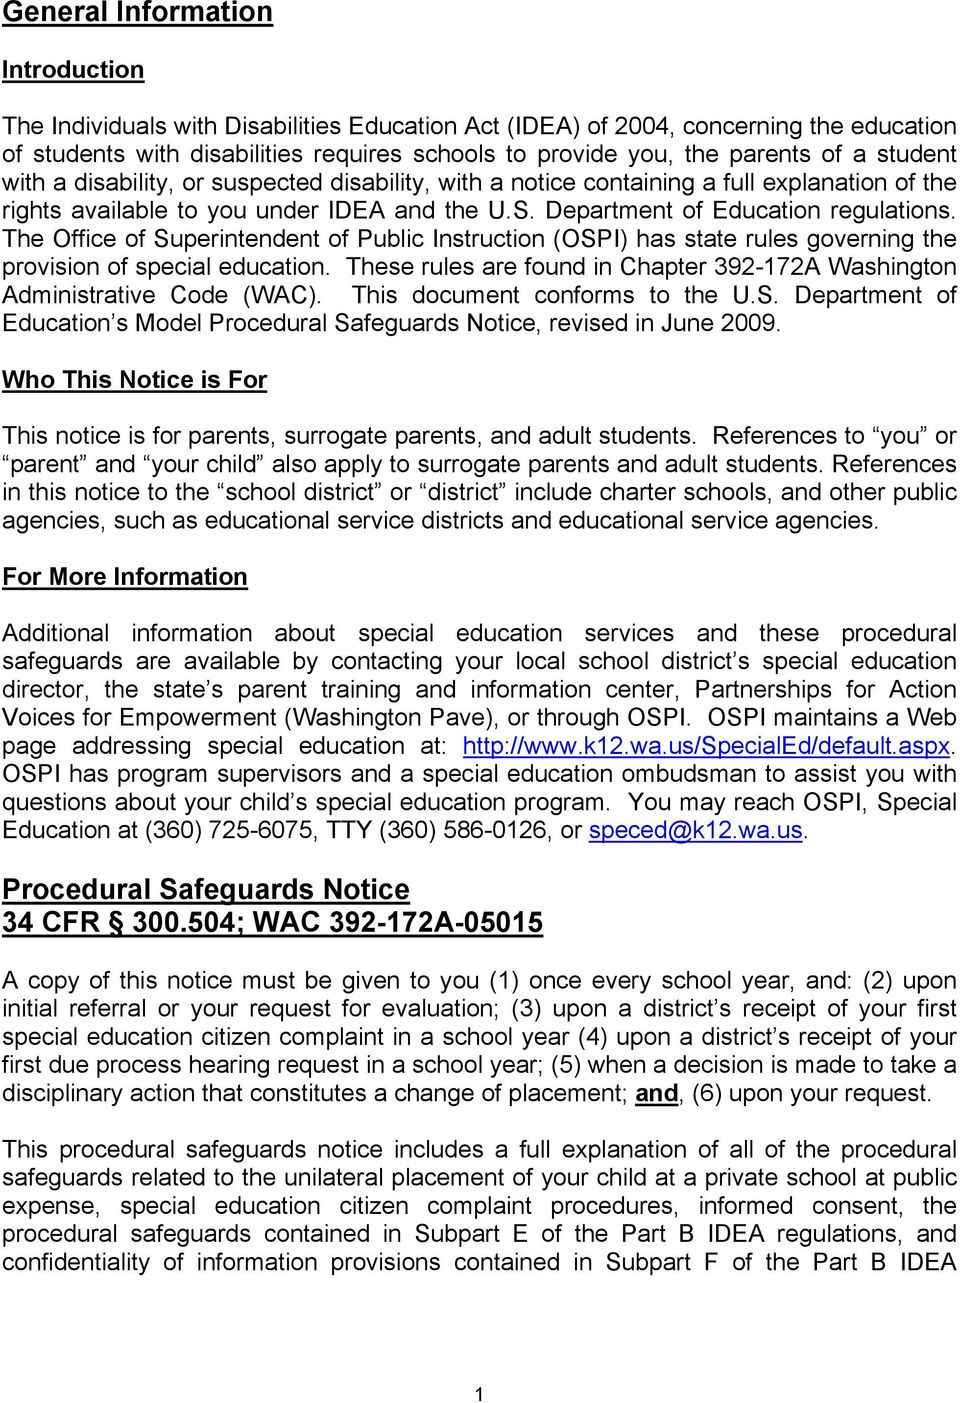 Notice Of Special Education Procedural Safeguards For Ospi >> Notice Of Special Education Procedural Safeguards For Students And